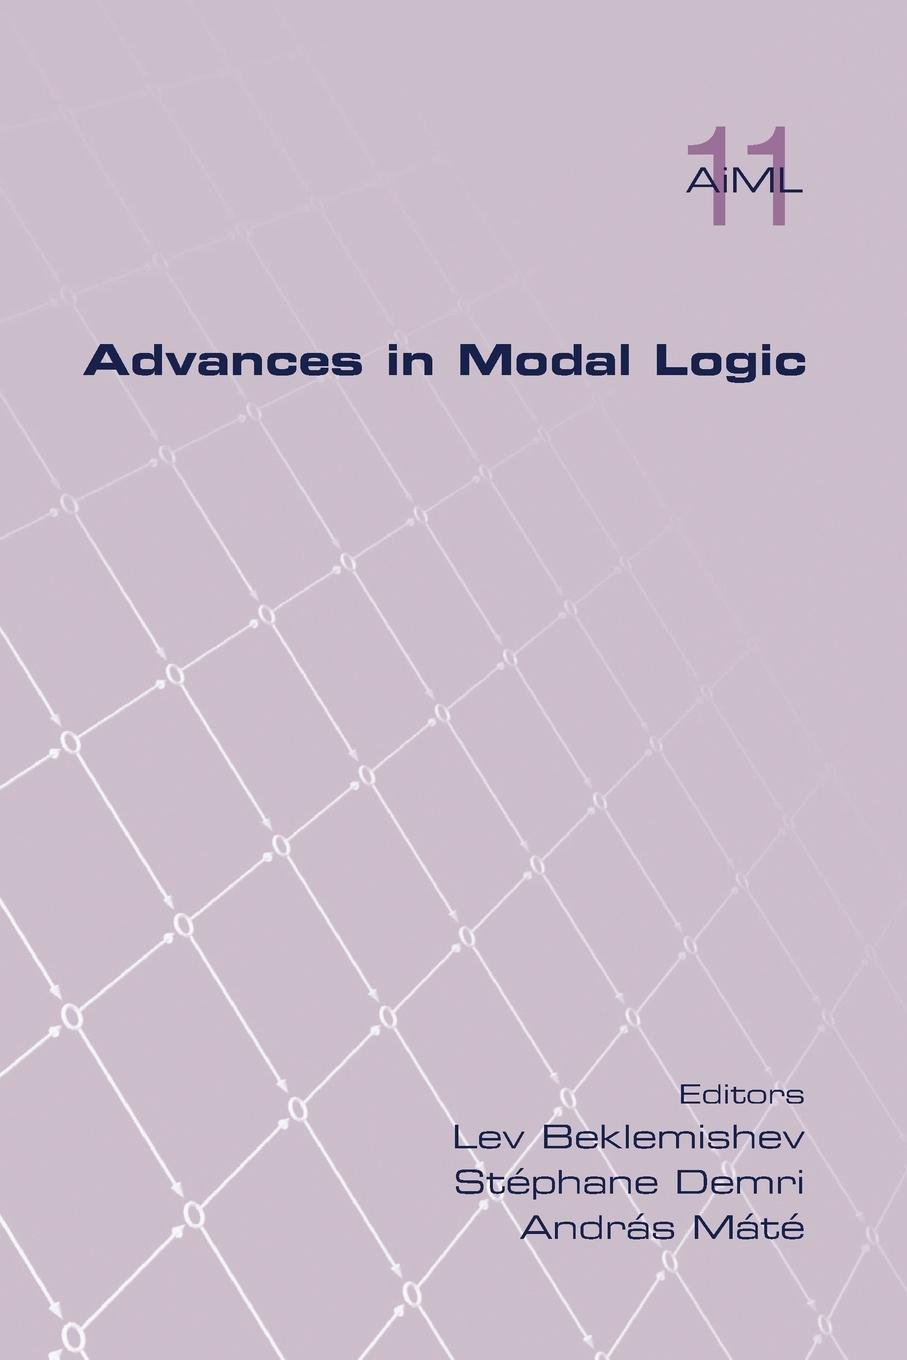 Download Advances in Modal Logic Volume 11 ebook